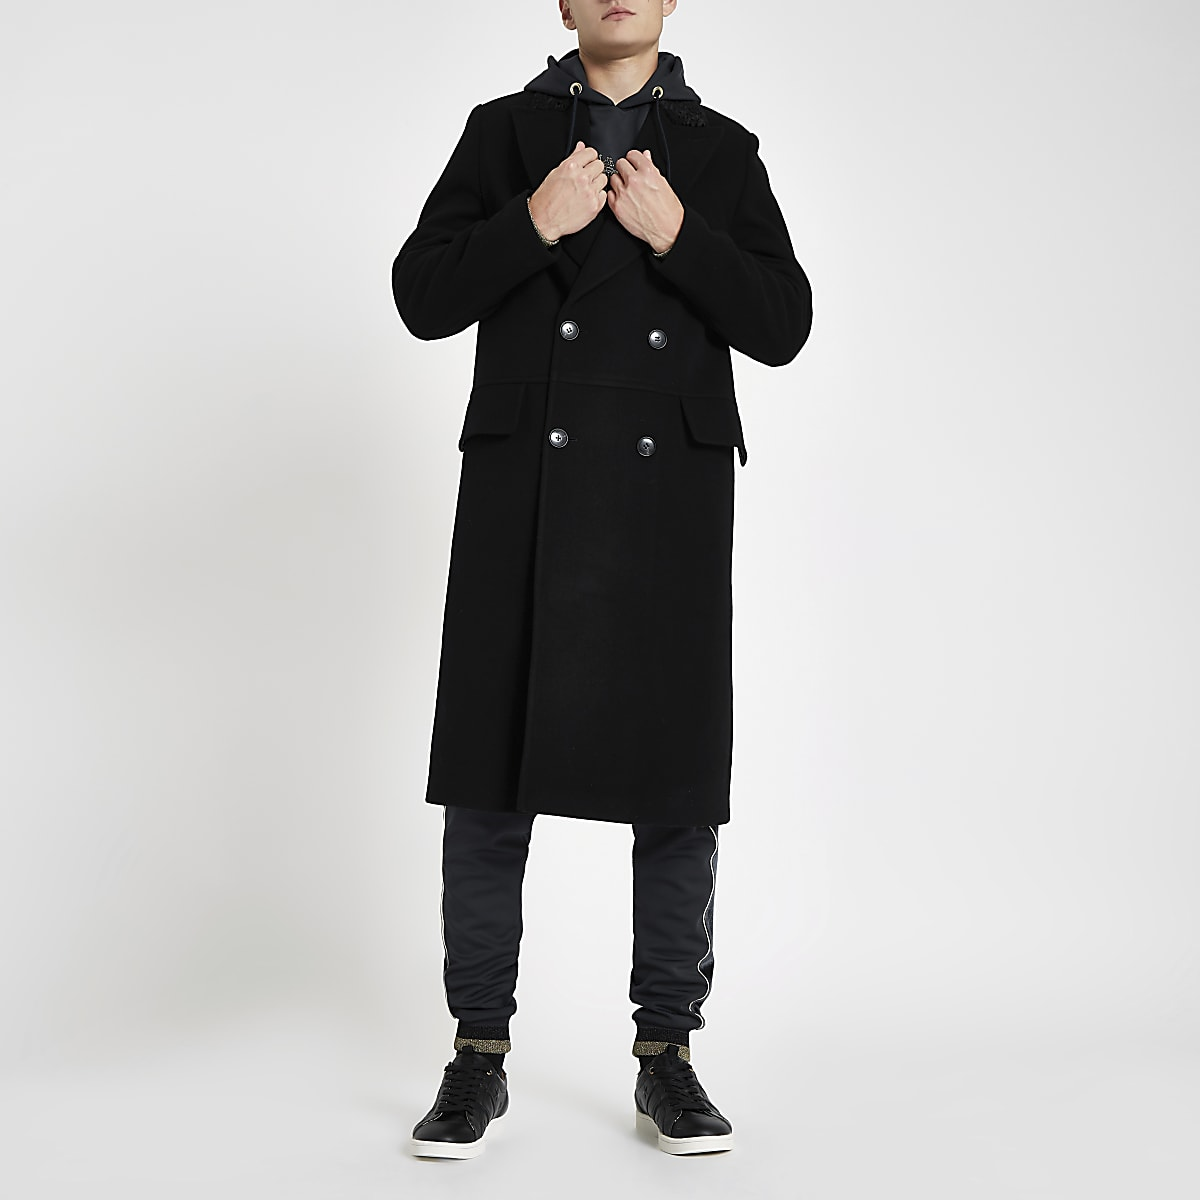 RI 30 black double breasted coat